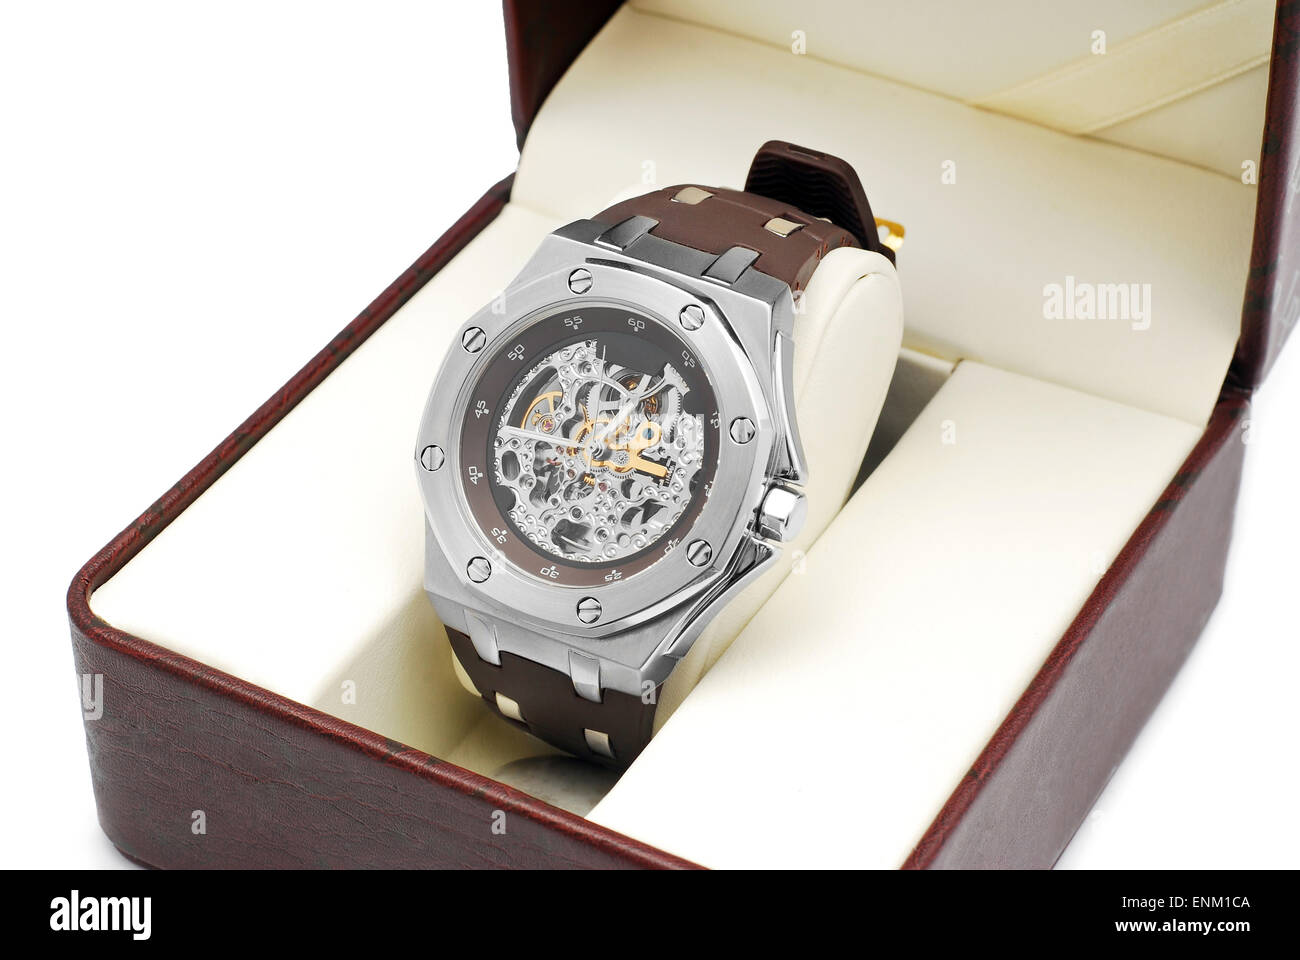 wrist watch in gift box - Stock Image